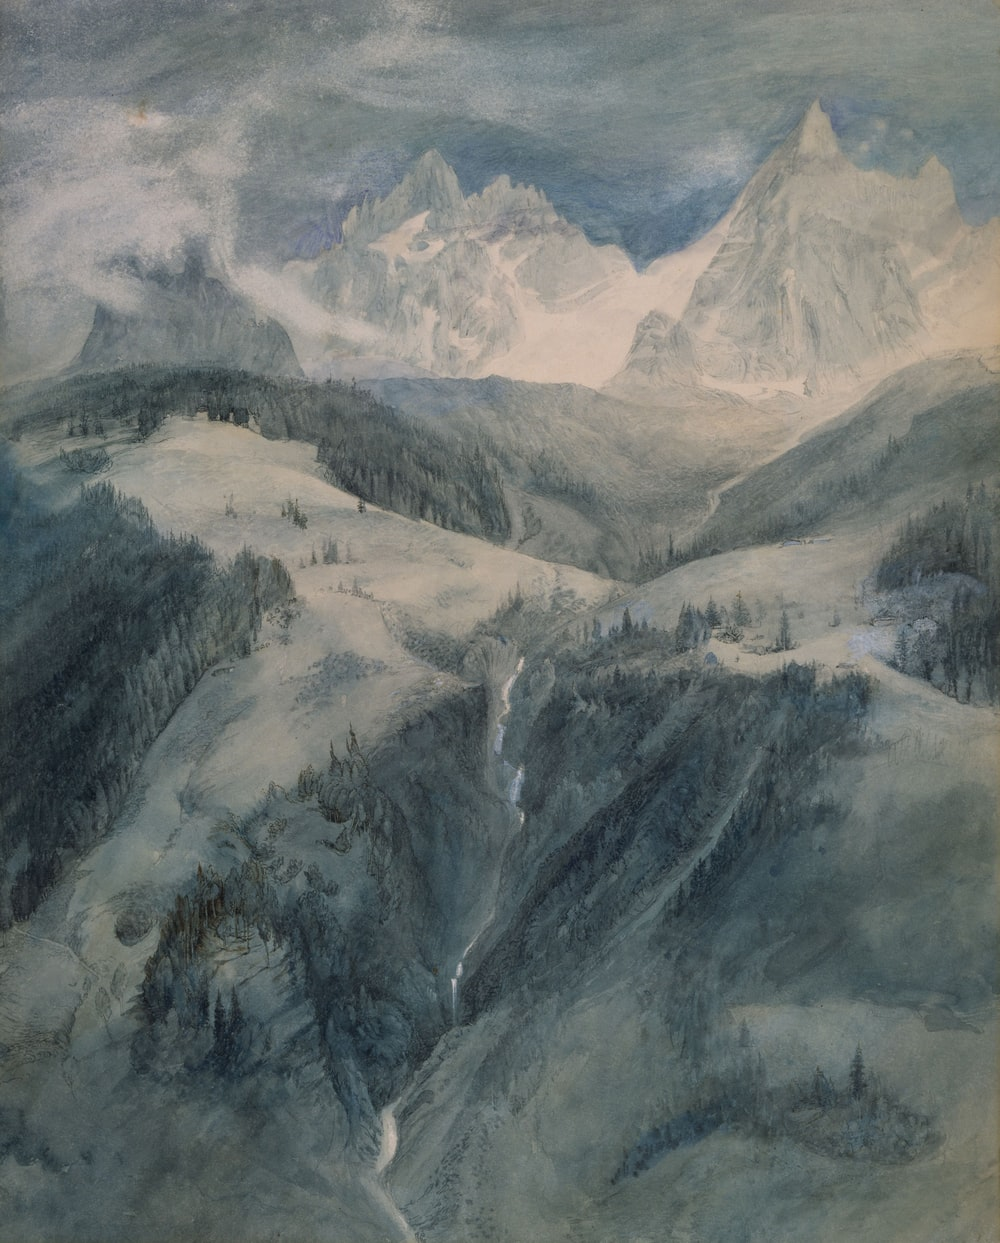 painting of icy mountain